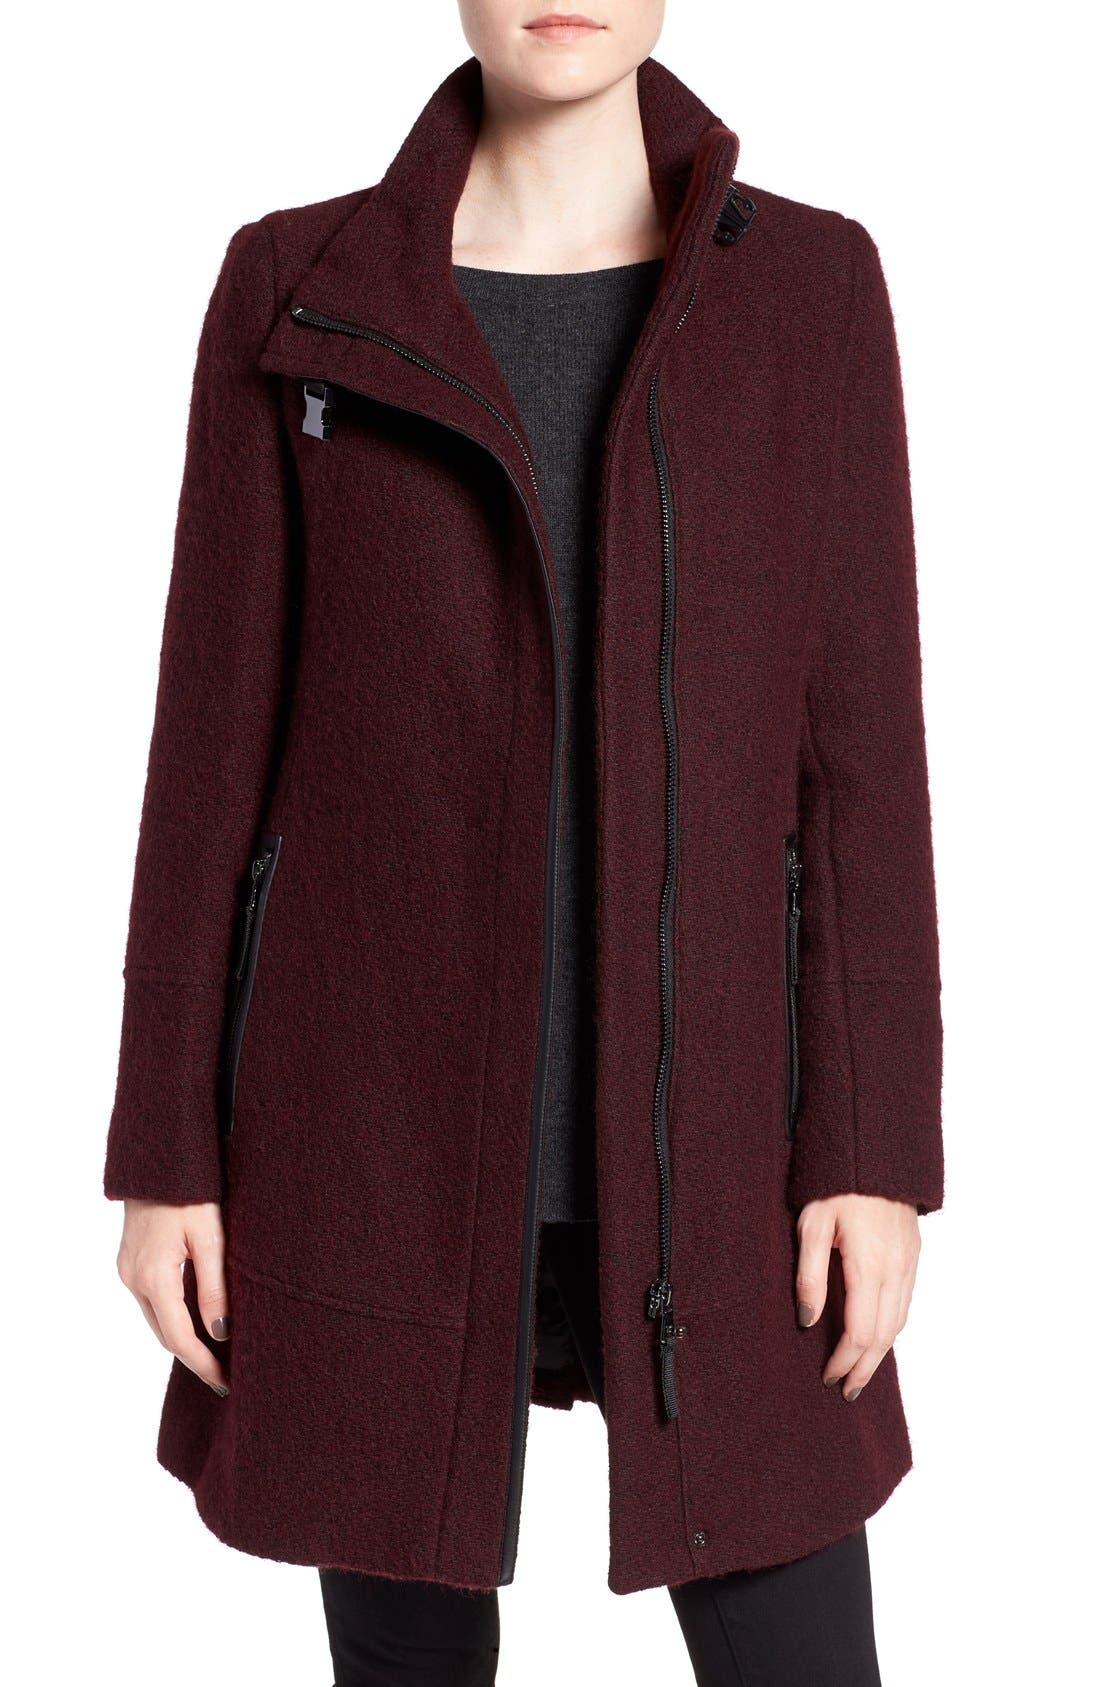 Main Image - Calvin Klein Wool Blend Bouclé Walking Jacket (Regular & Petite)